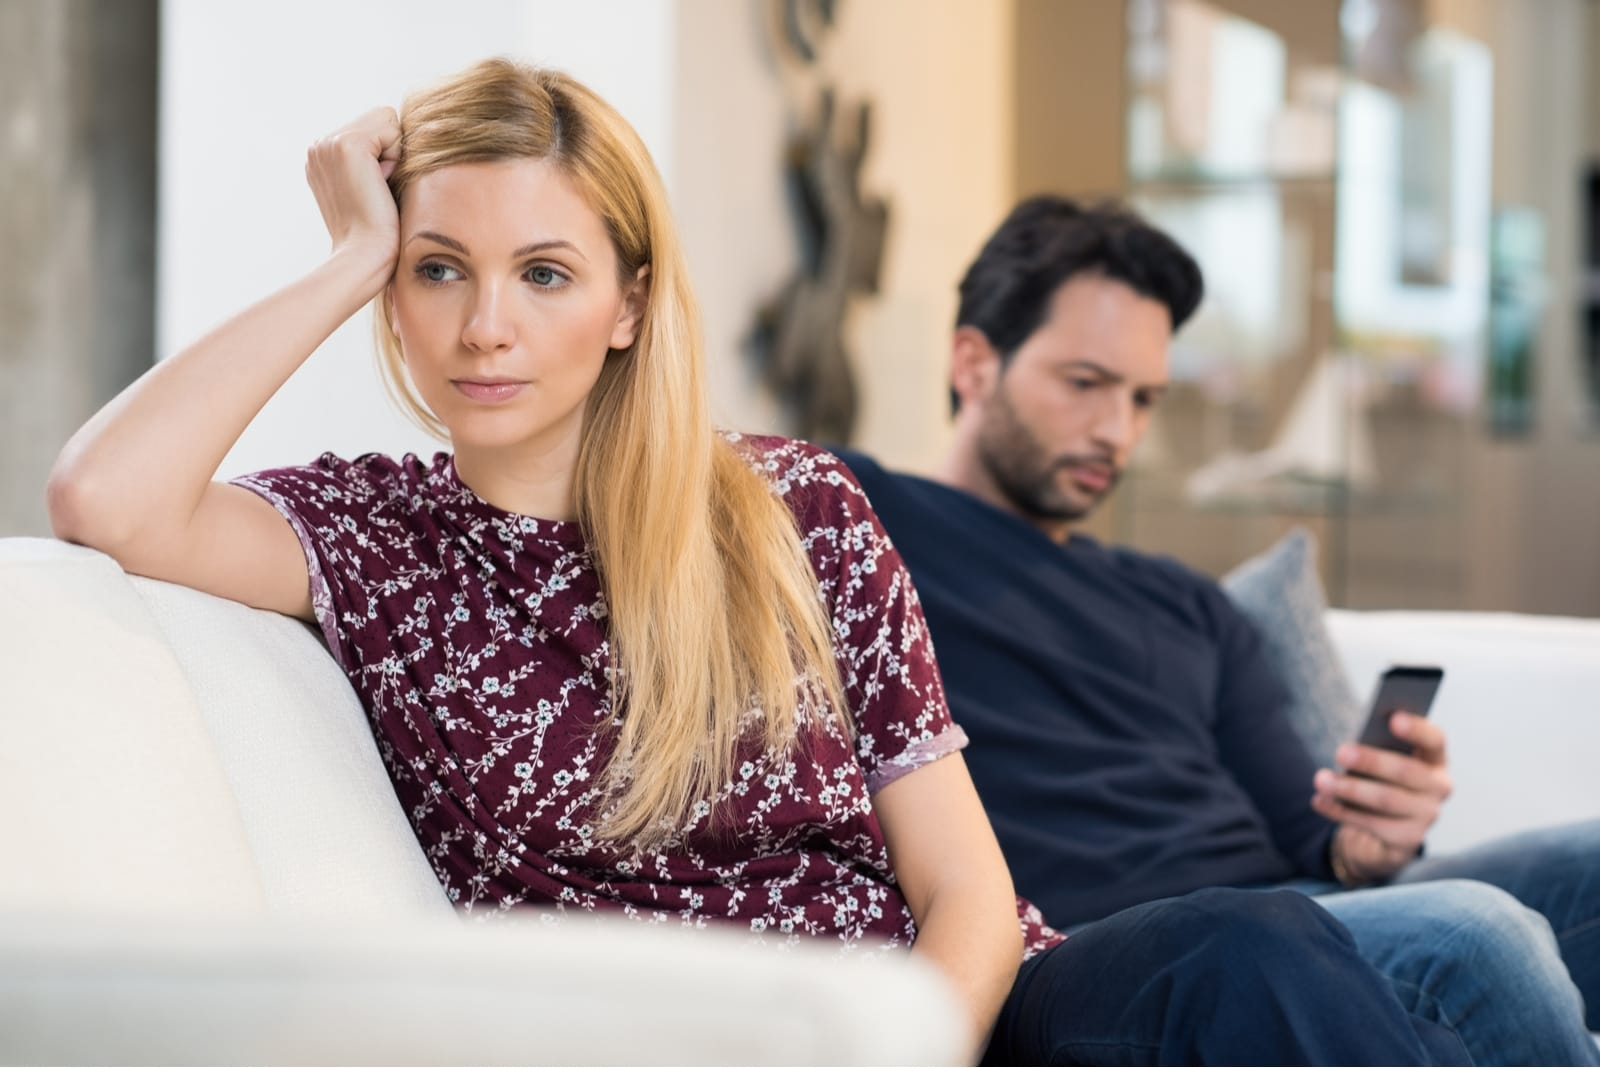 blonde woman leaning on sofa while sitting near man